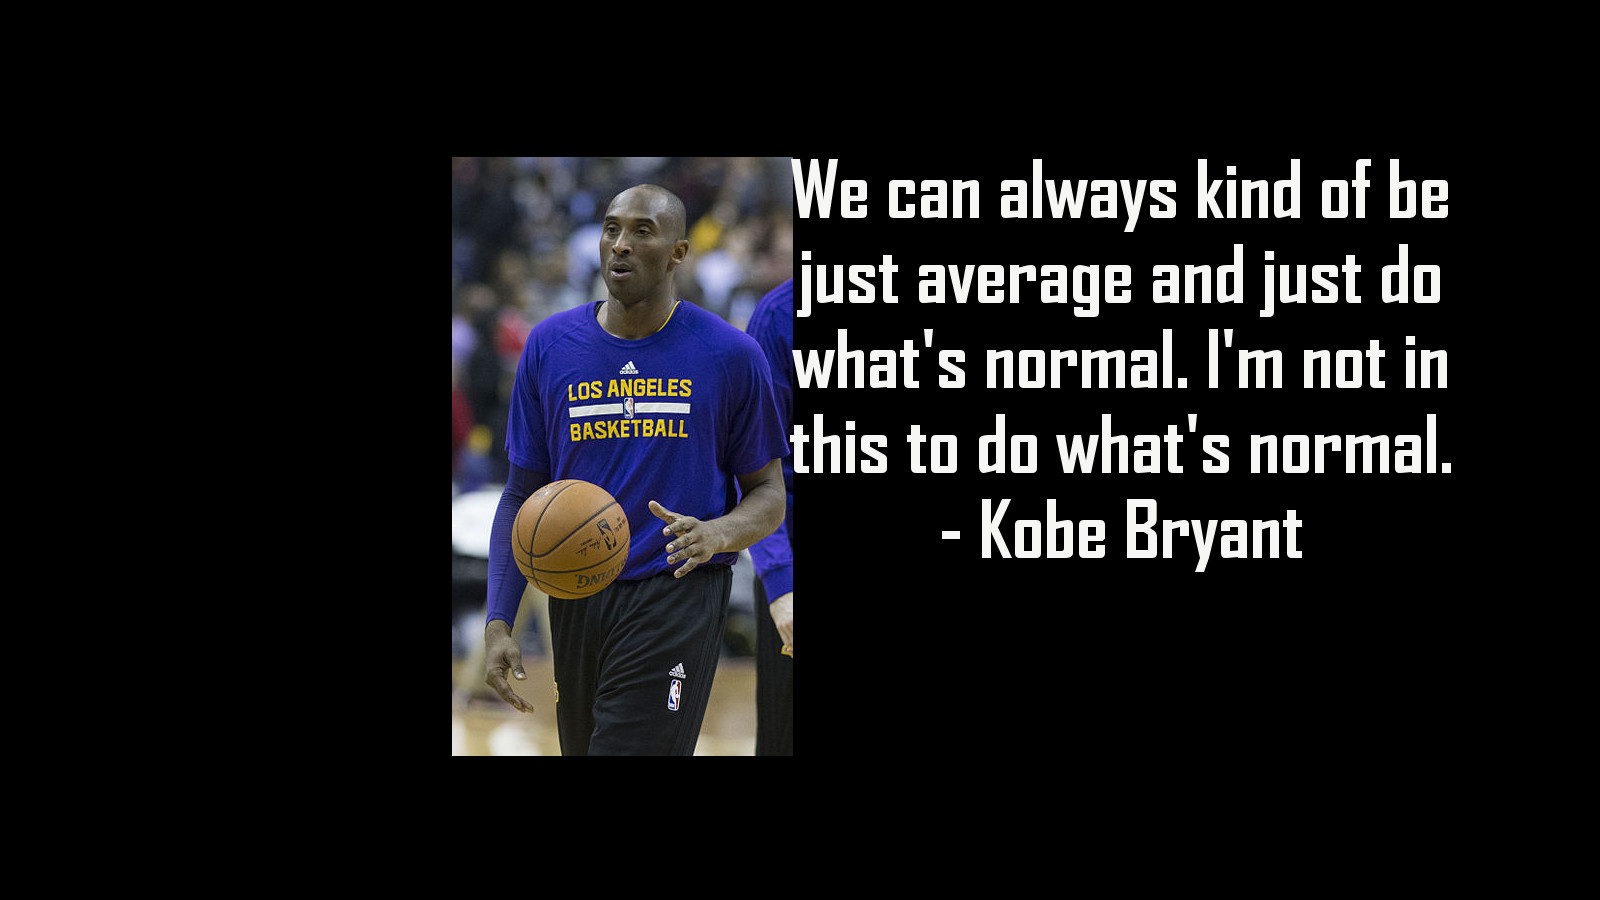 Kobe Bryant image with quote